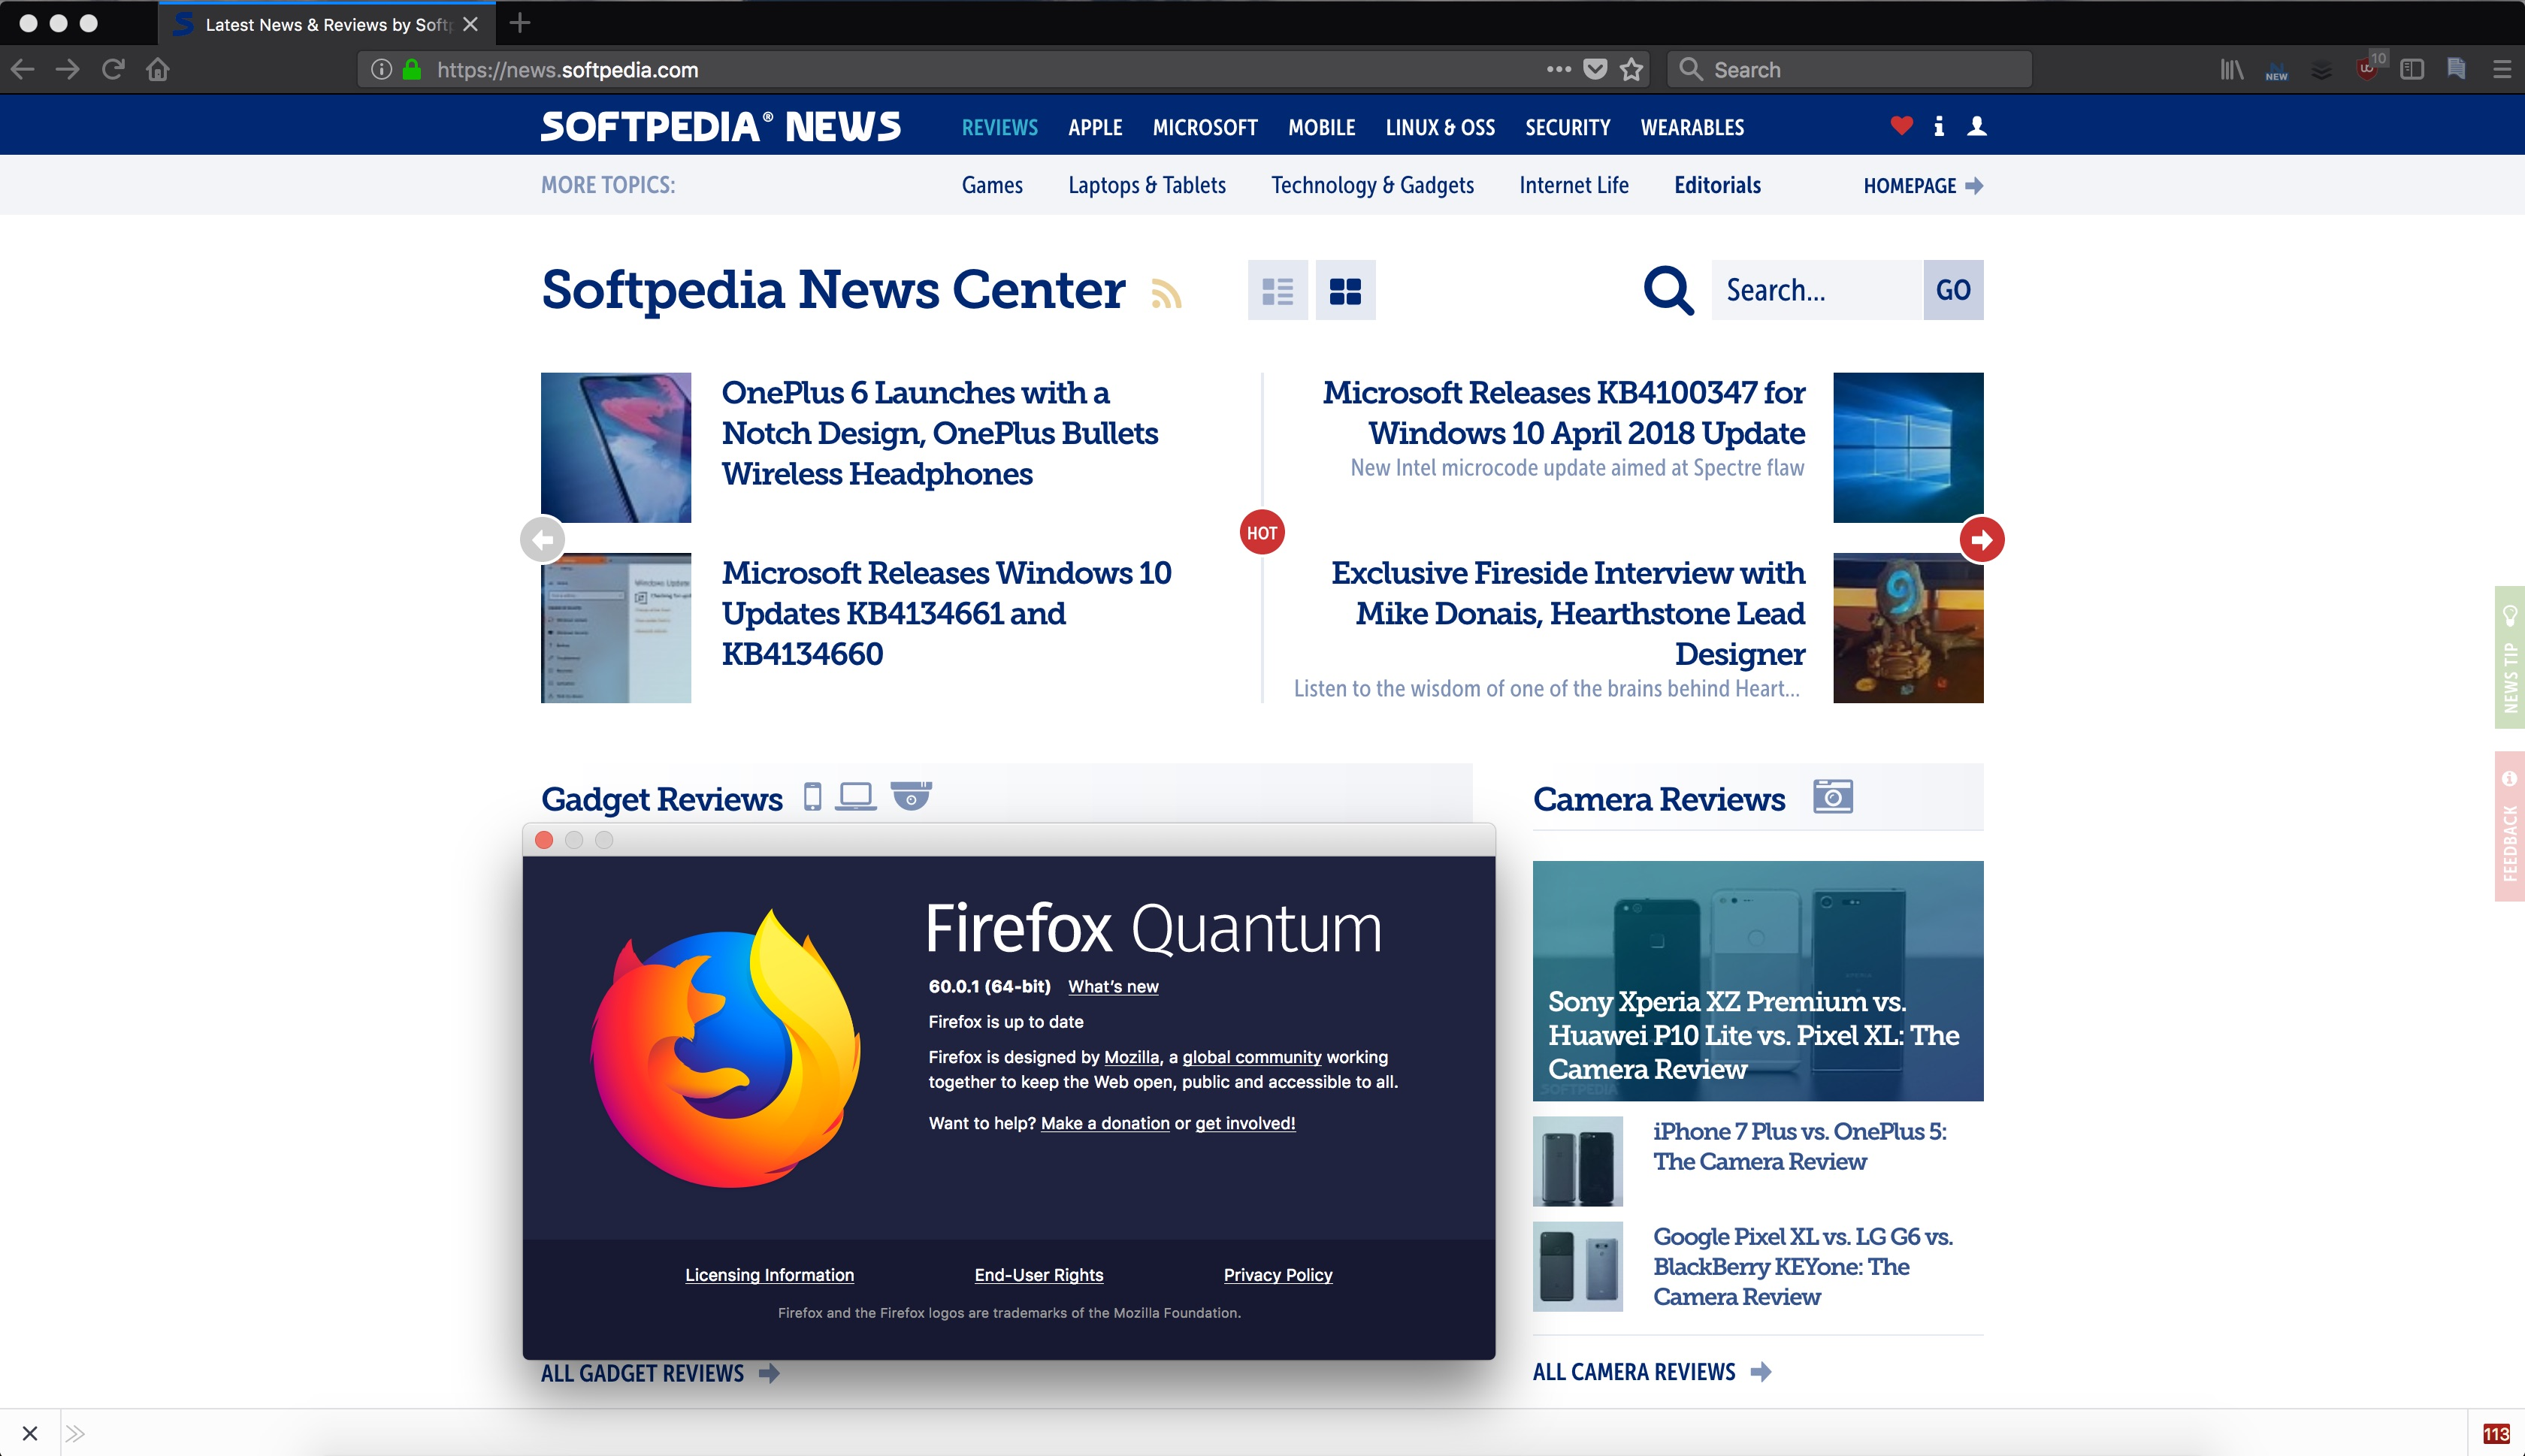 Mozilla Firefox 60 0 1 Released with Many Improvements, Disables